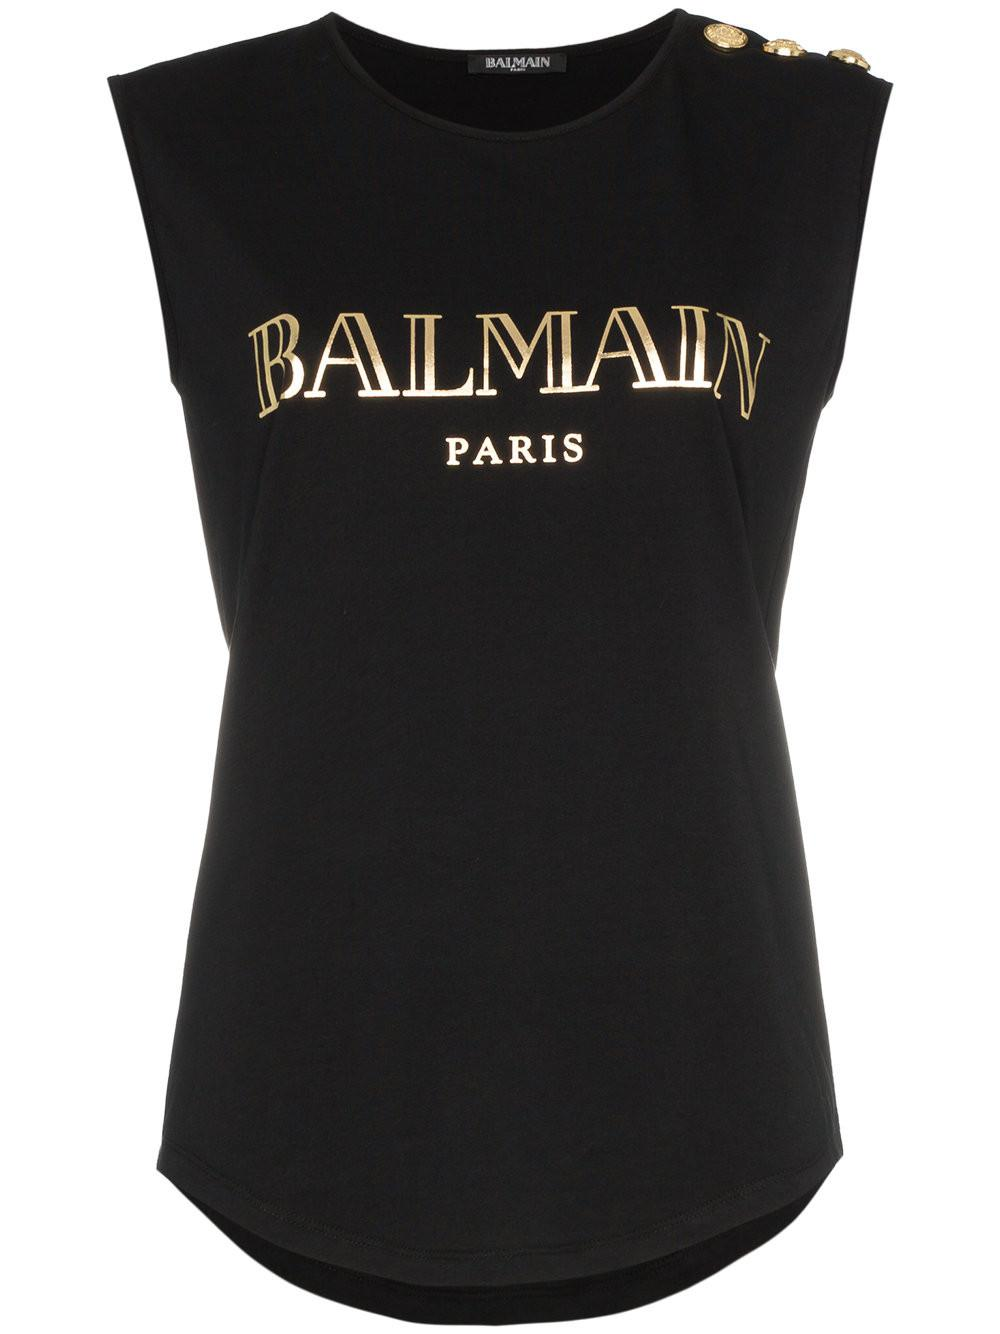 a7d5f8d2 Balmain - Black Printed Cotton Top - Lyst. View fullscreen